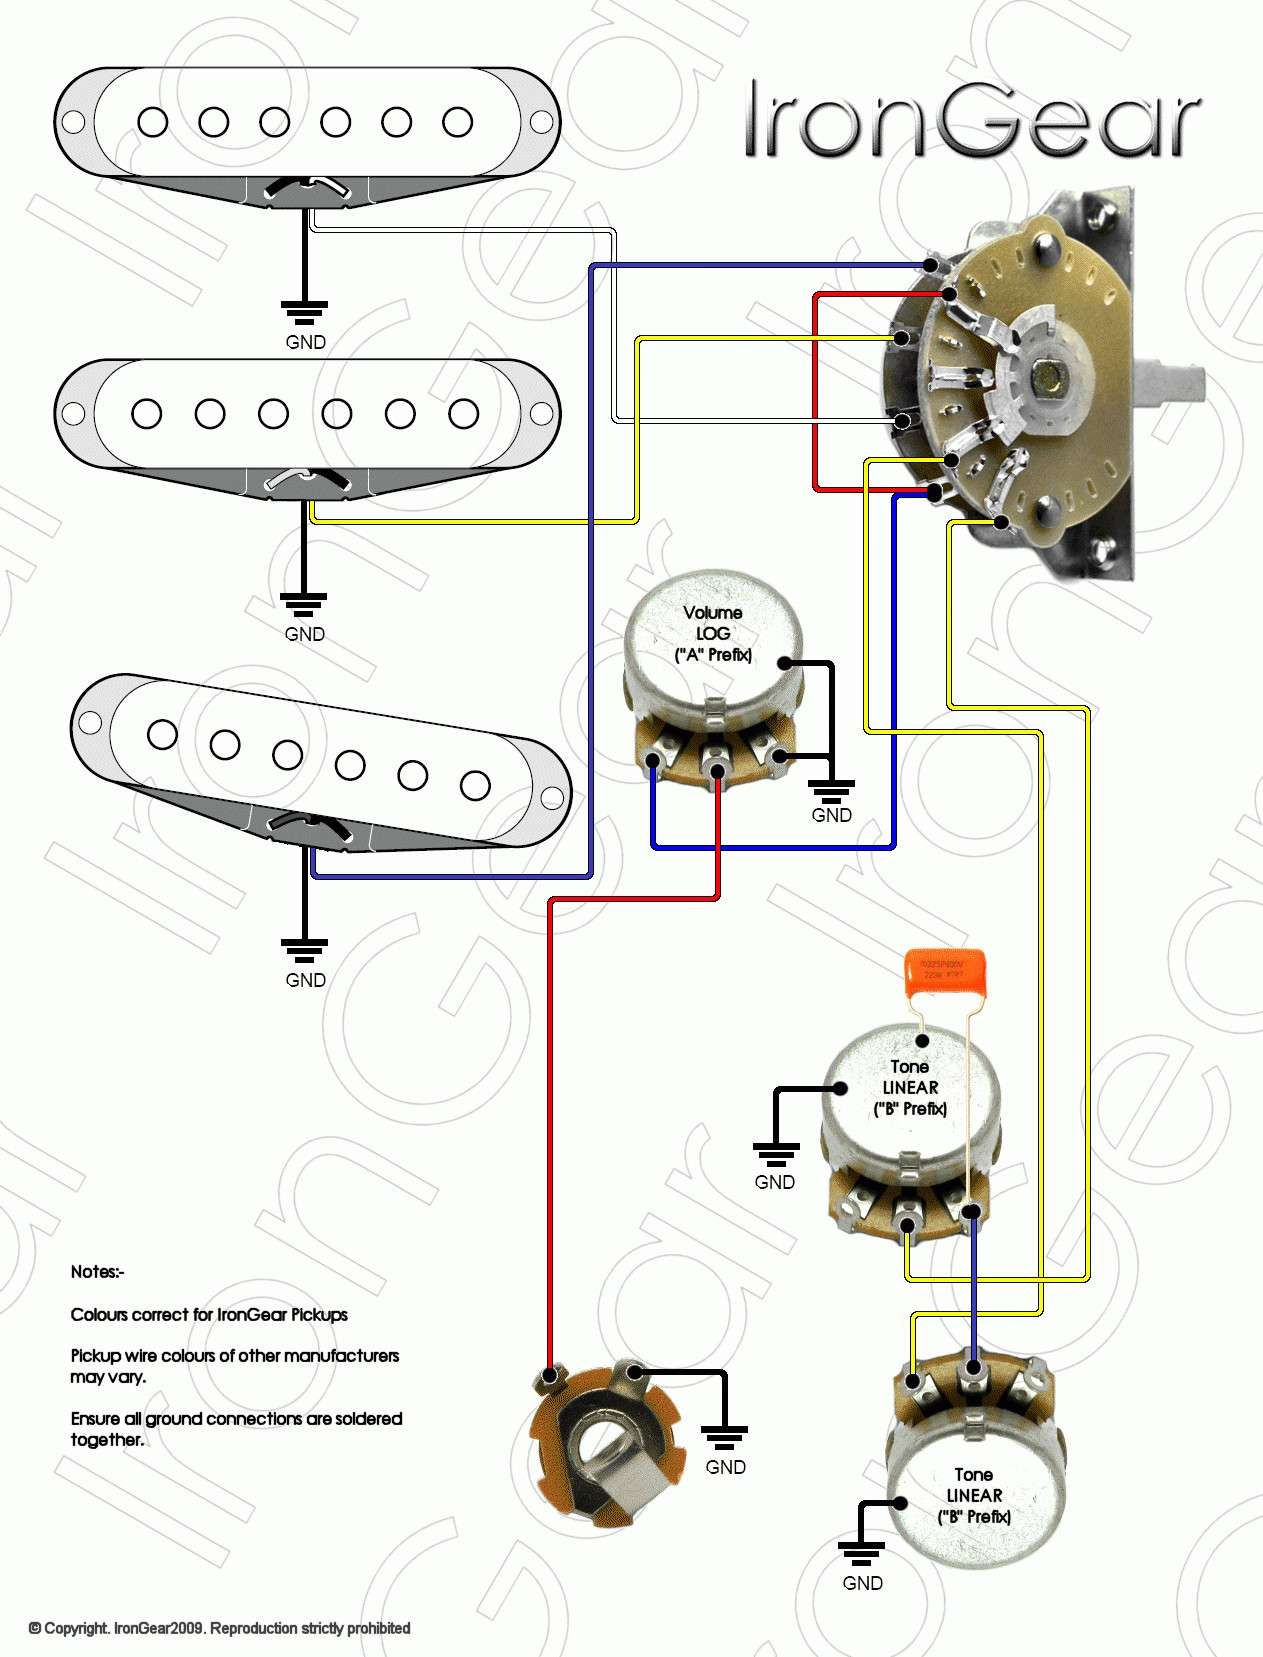 hight resolution of wiring diagram 3 way switch elegant wiring diagram for 5 way guitarwiring diagram 3 way switch